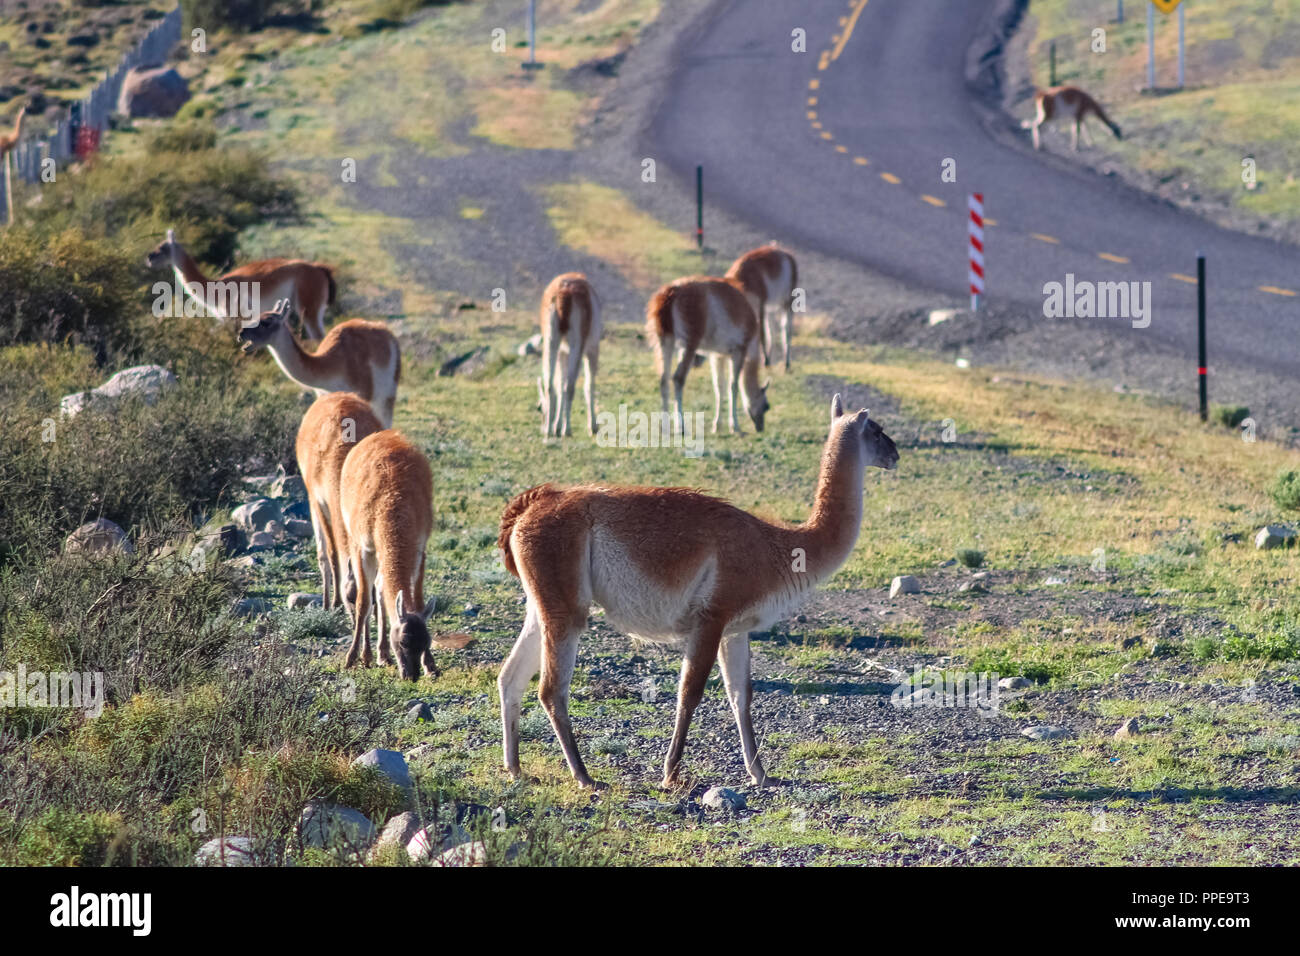 Guanaco in the Torres del Paine National Park. Autumn in Patagonia, the Chilean side Guanacos. - Stock Image